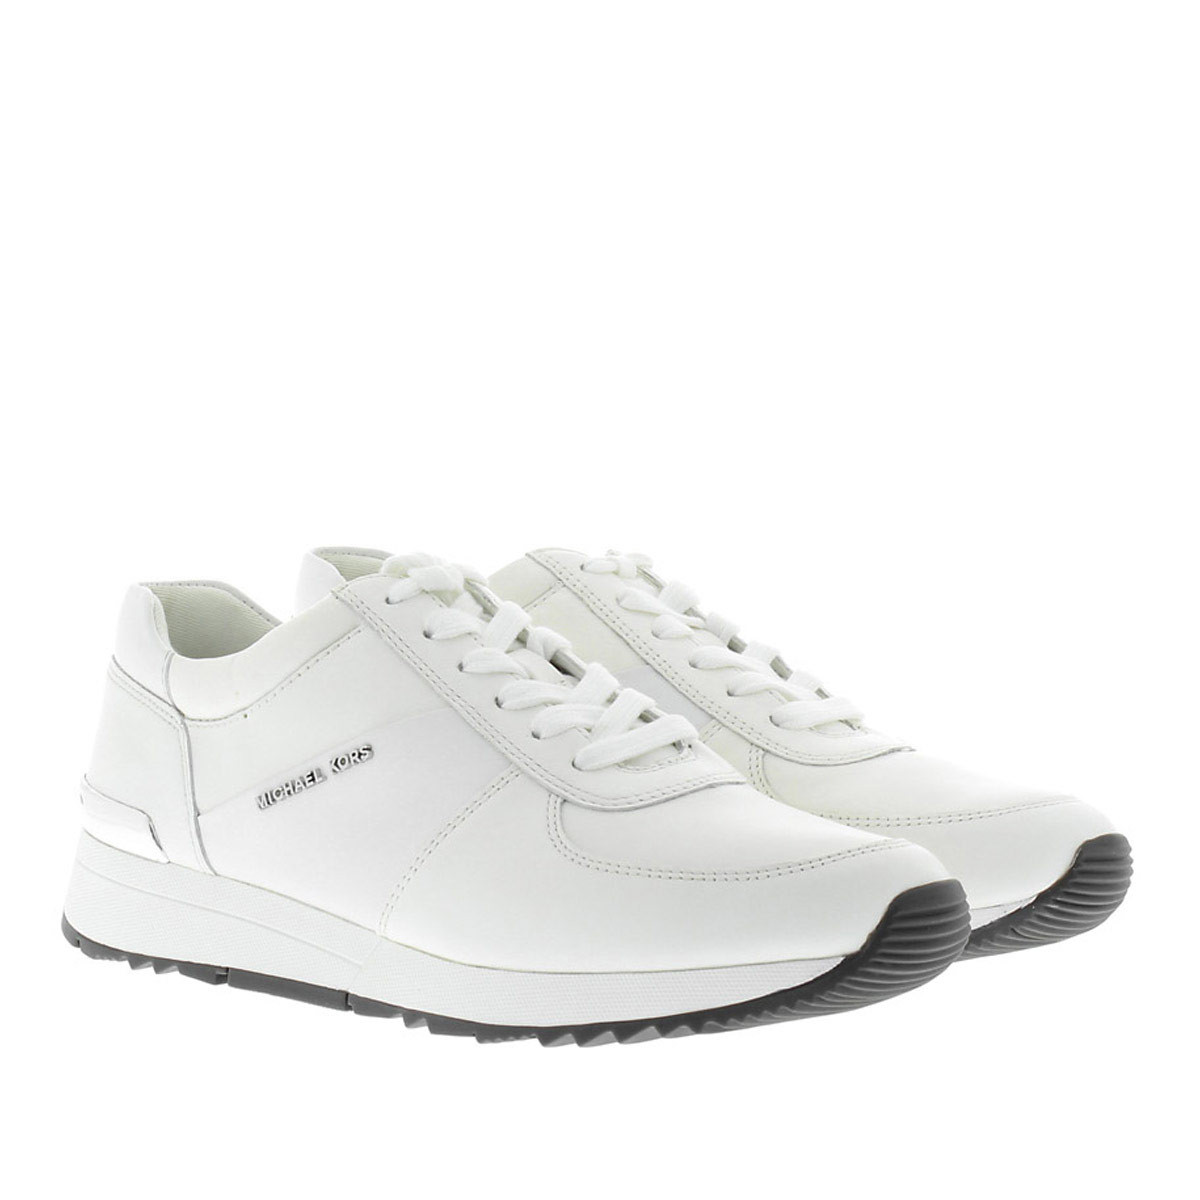 Michael Kors Sneakers - Allie Trainer Flat Optic White - in weiß - für Damen